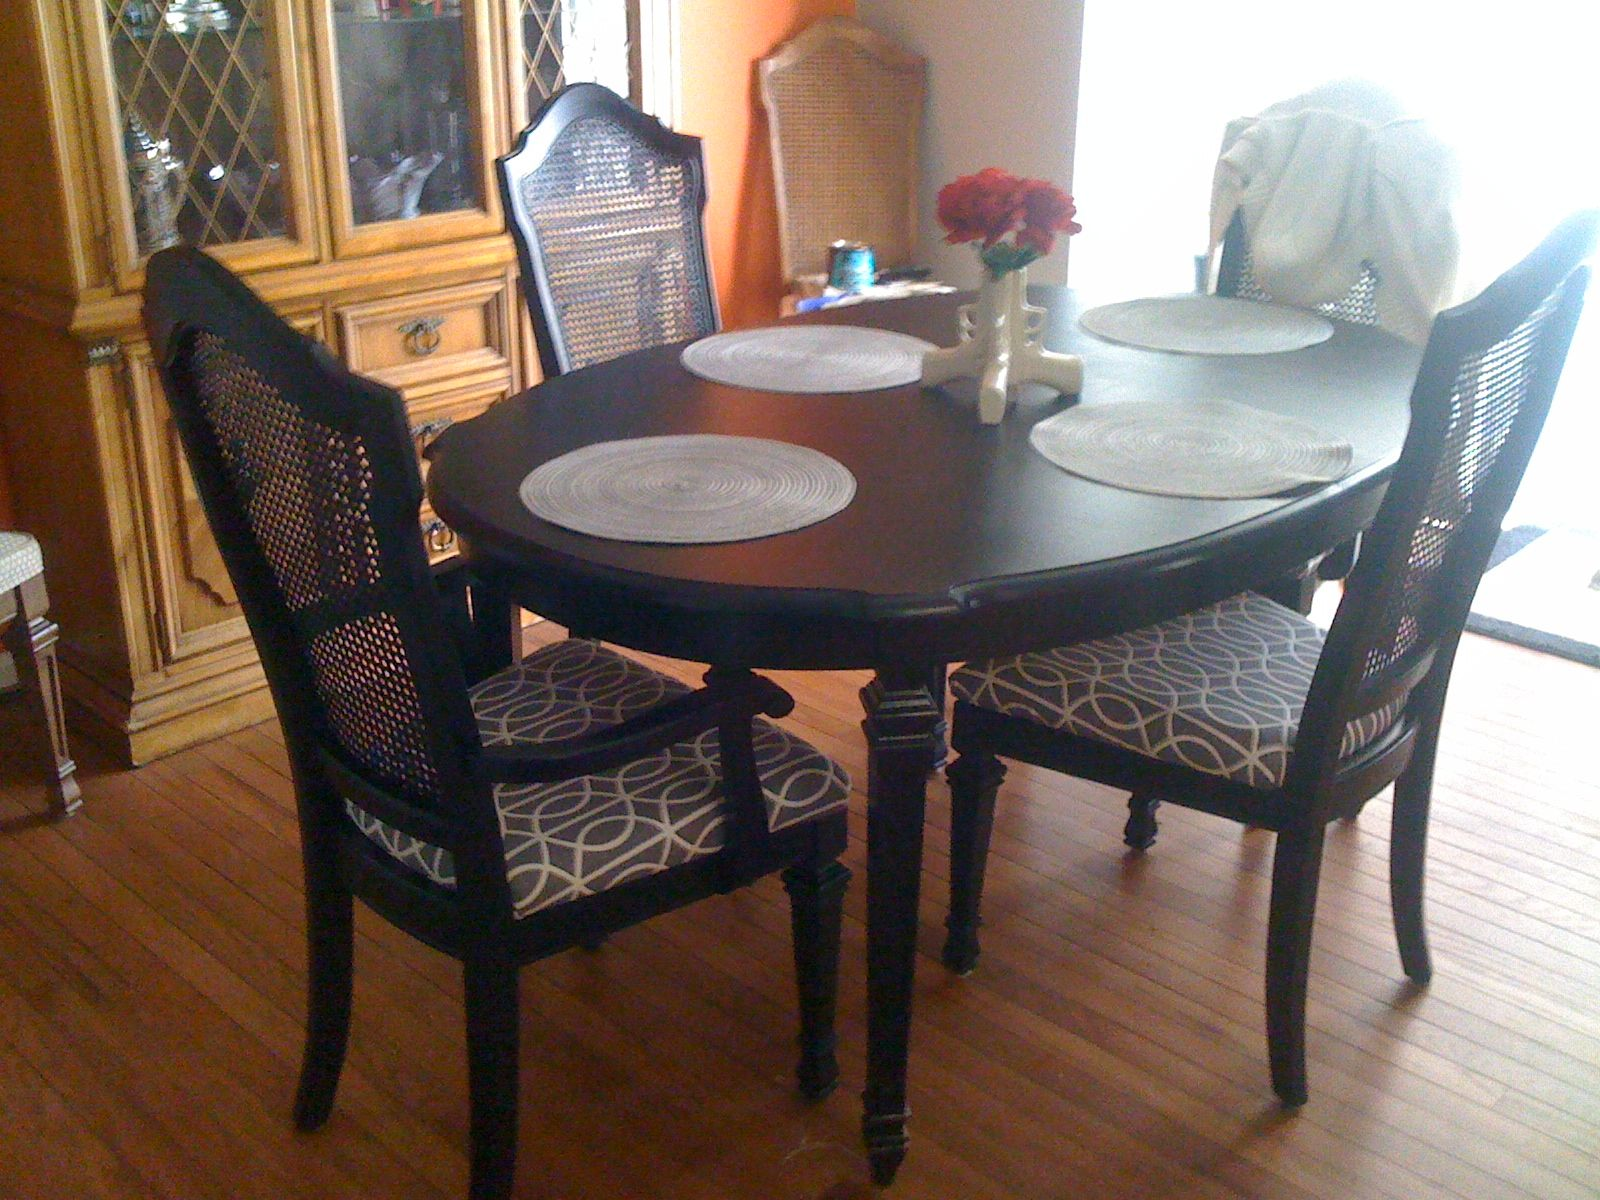 Refinishing A Dining Room Table Diy S Someday In